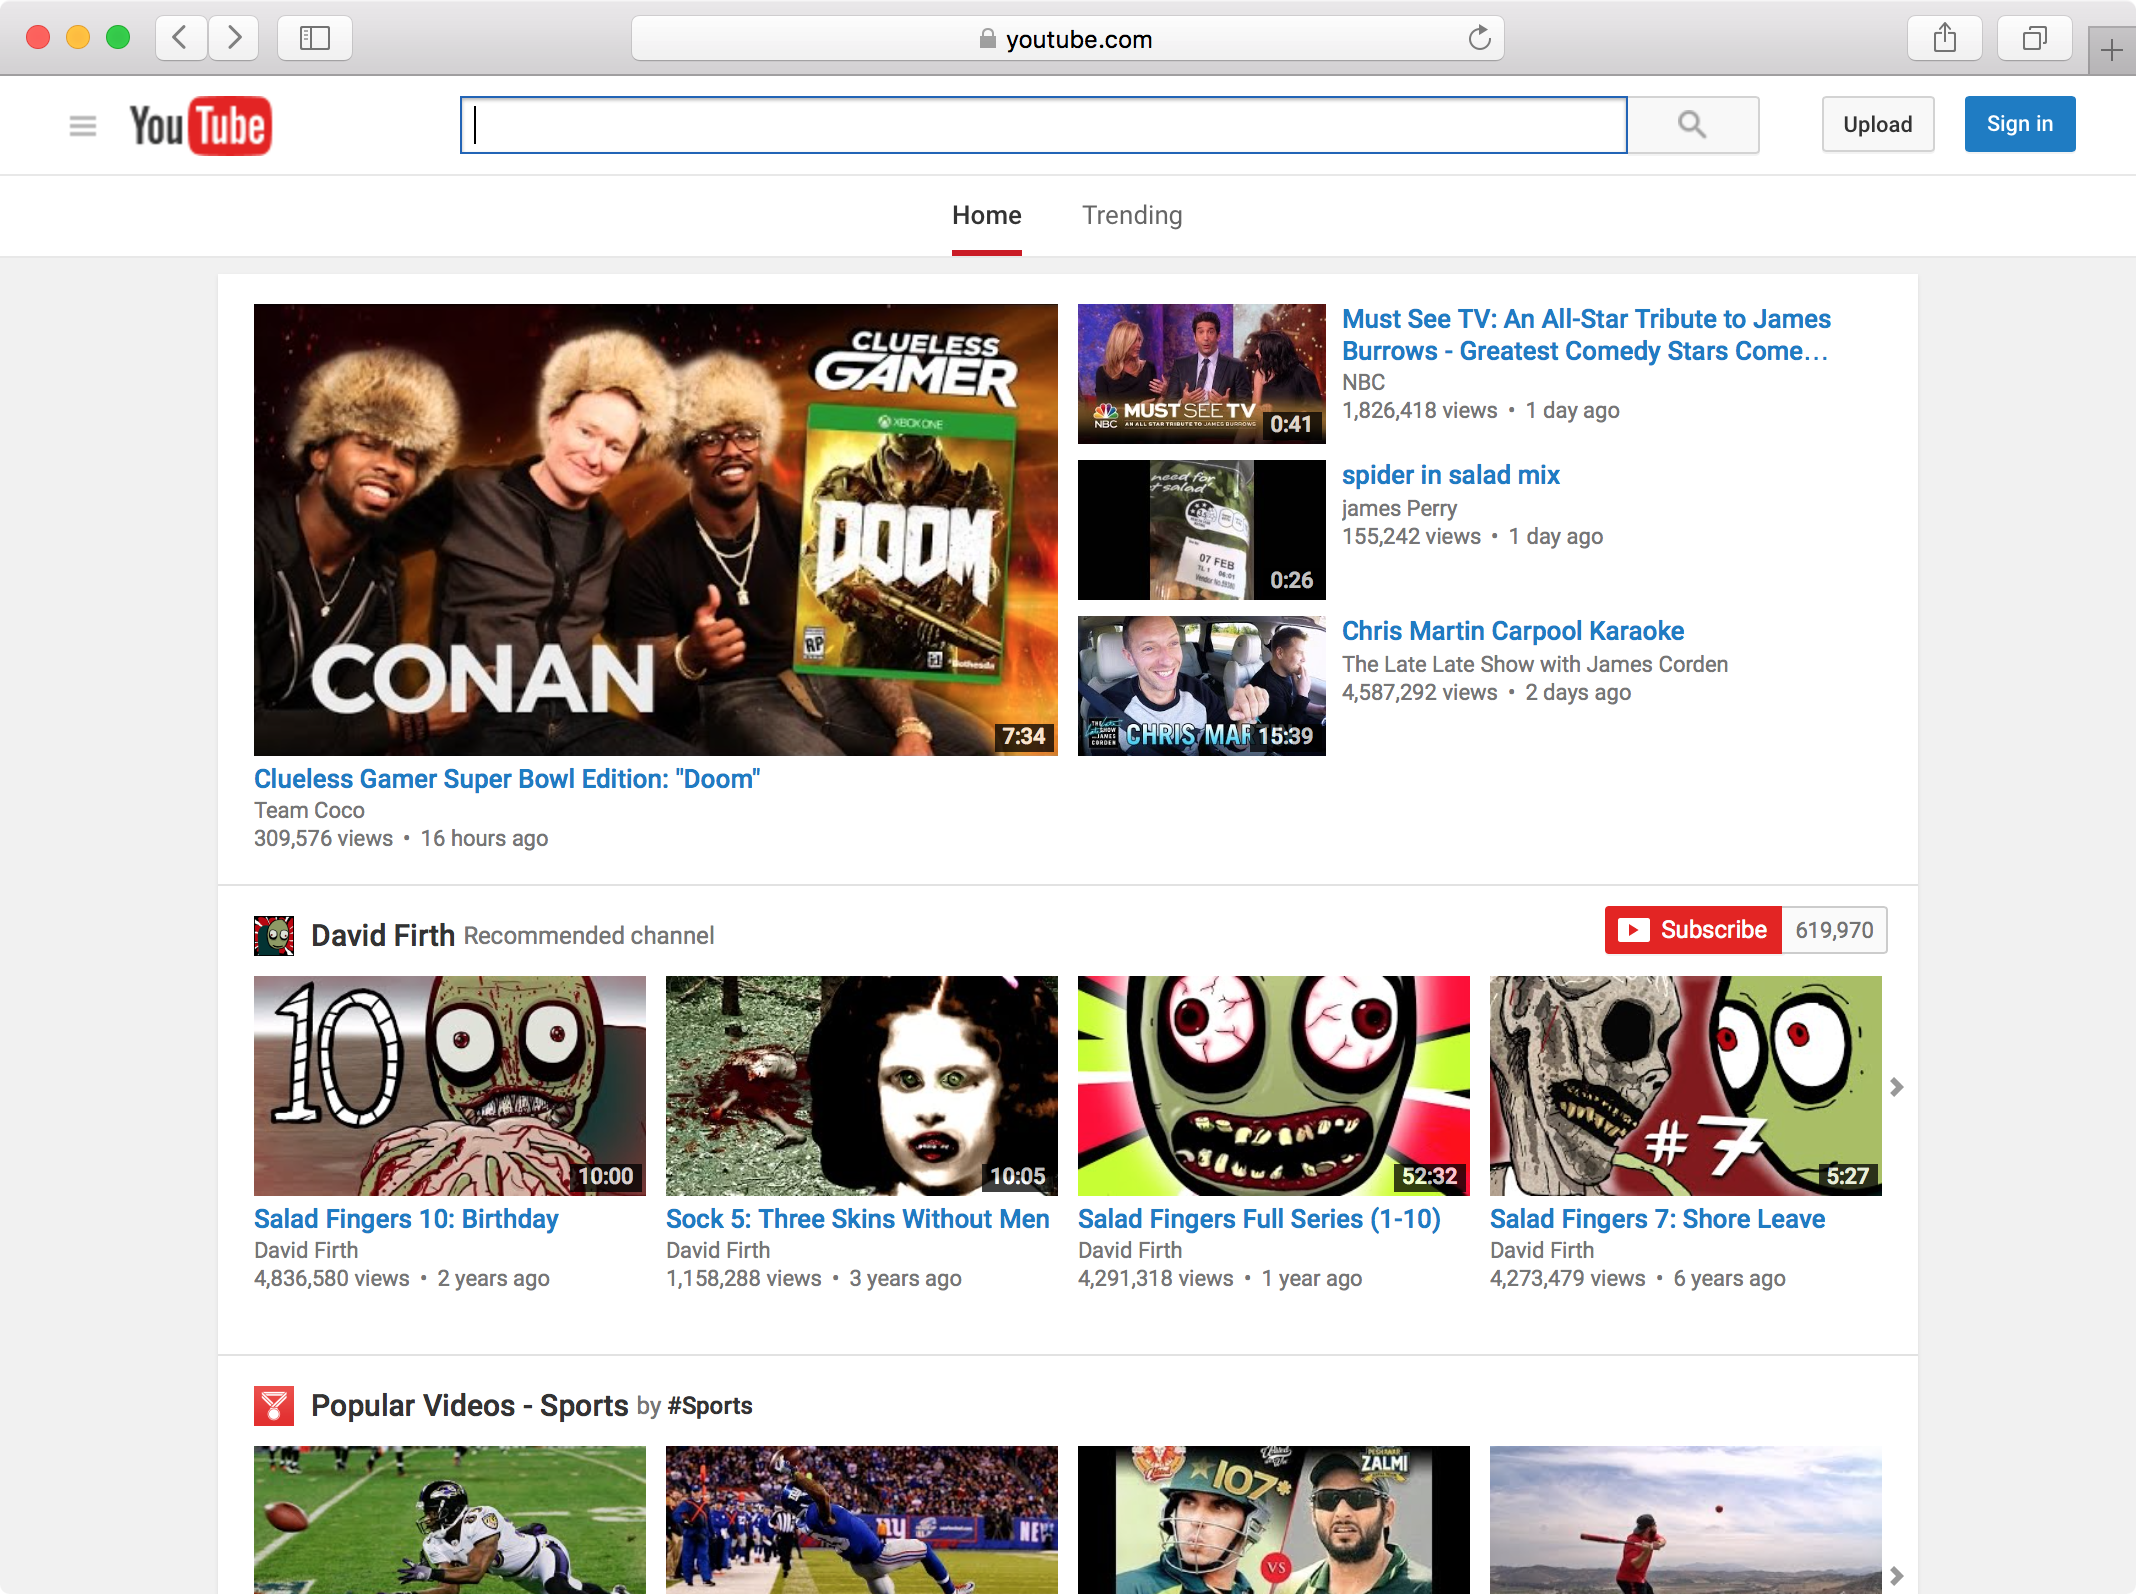 YouTube on desktop